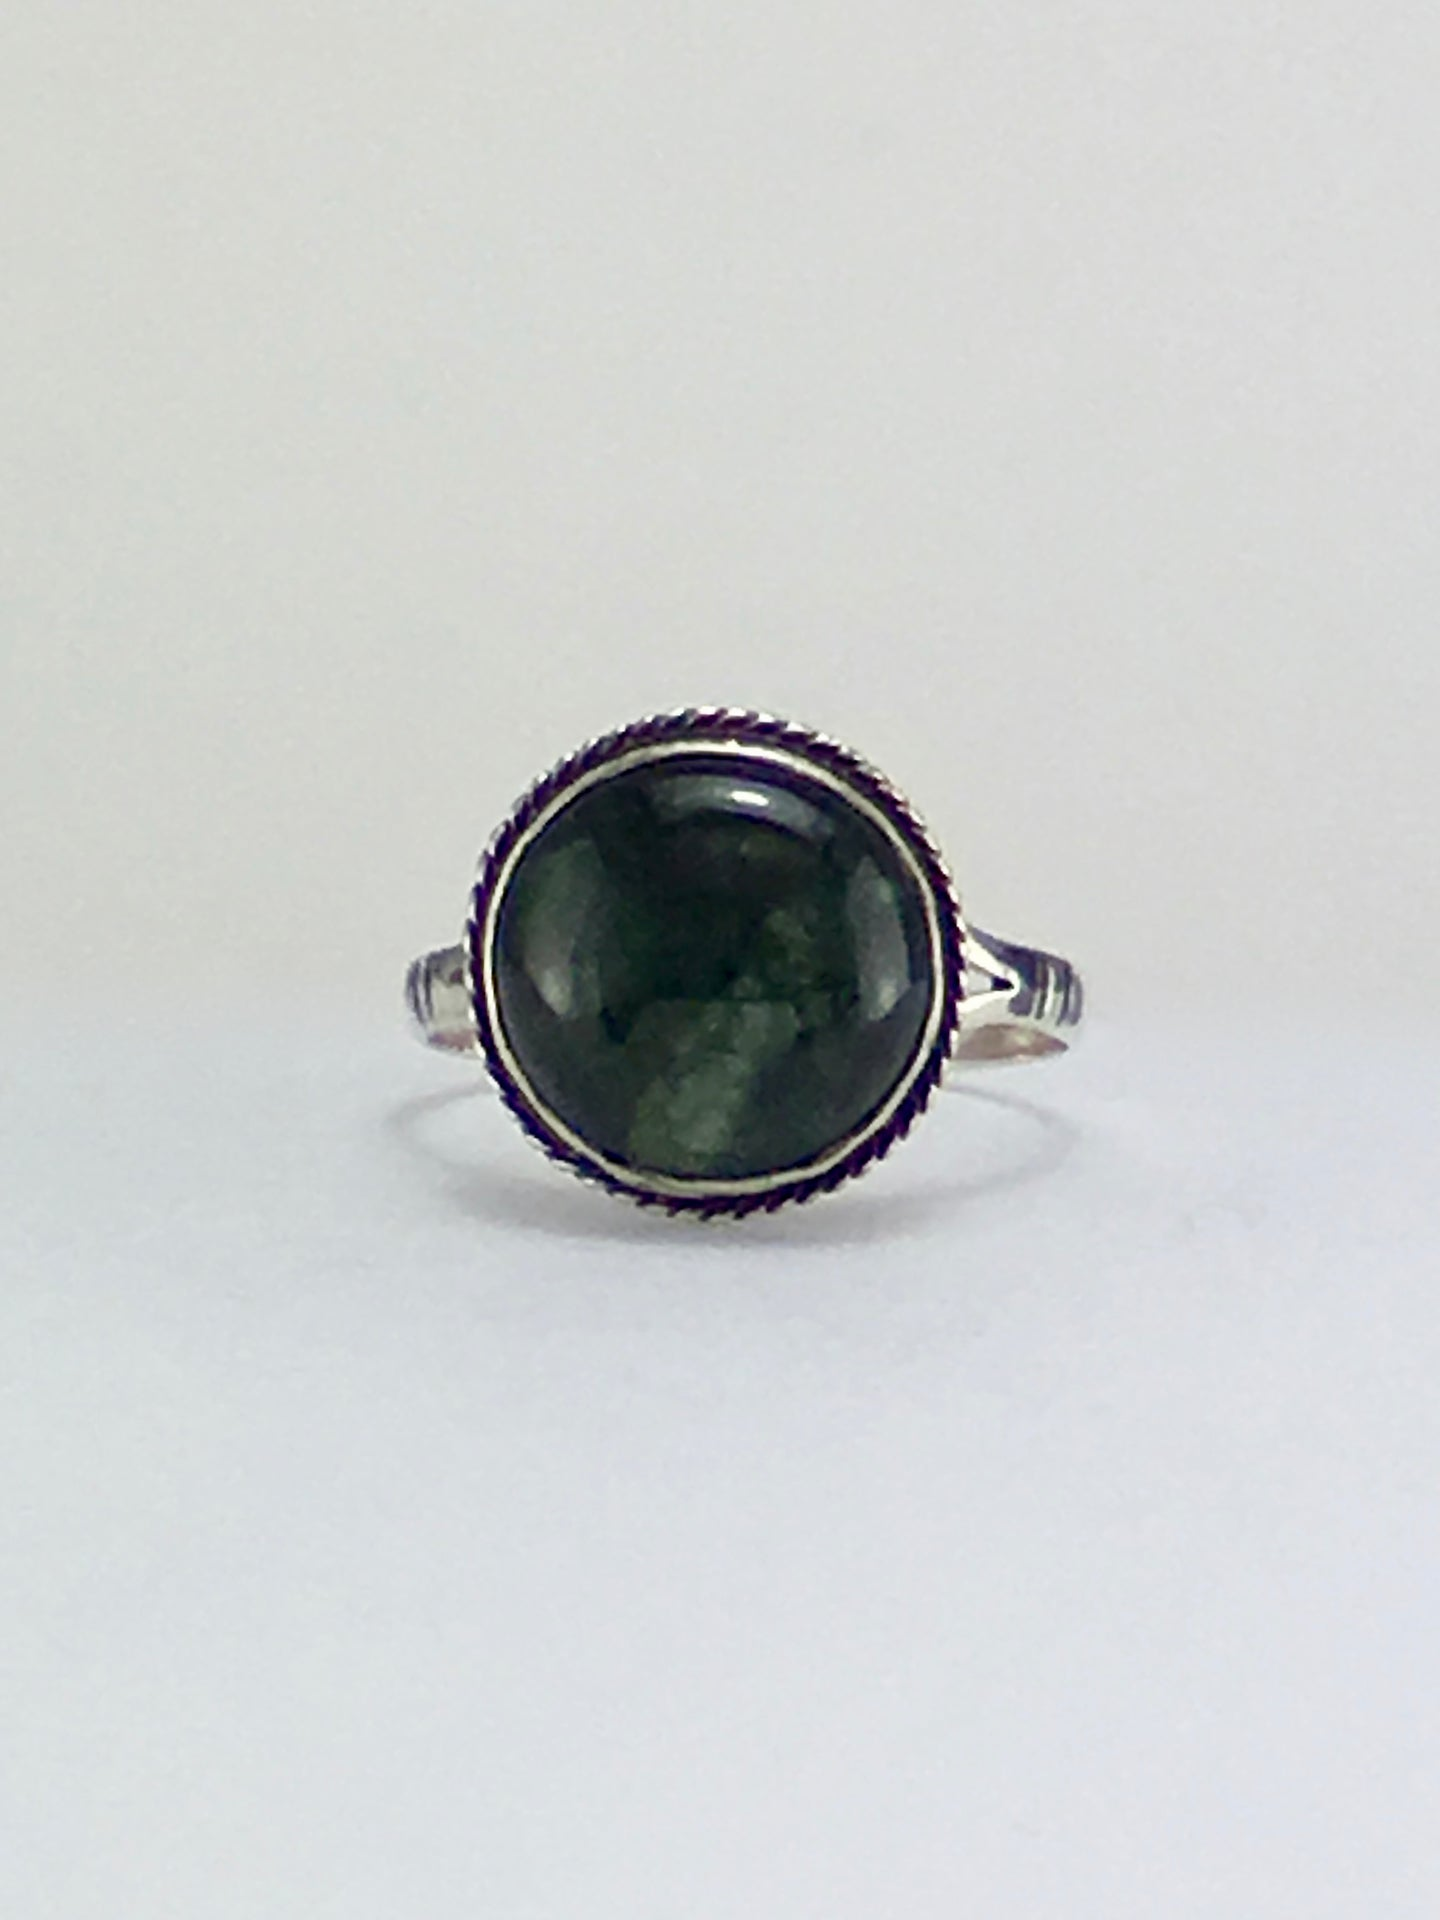 Dark green jade round cabochon sterling silver cocktail ring one of a kind.